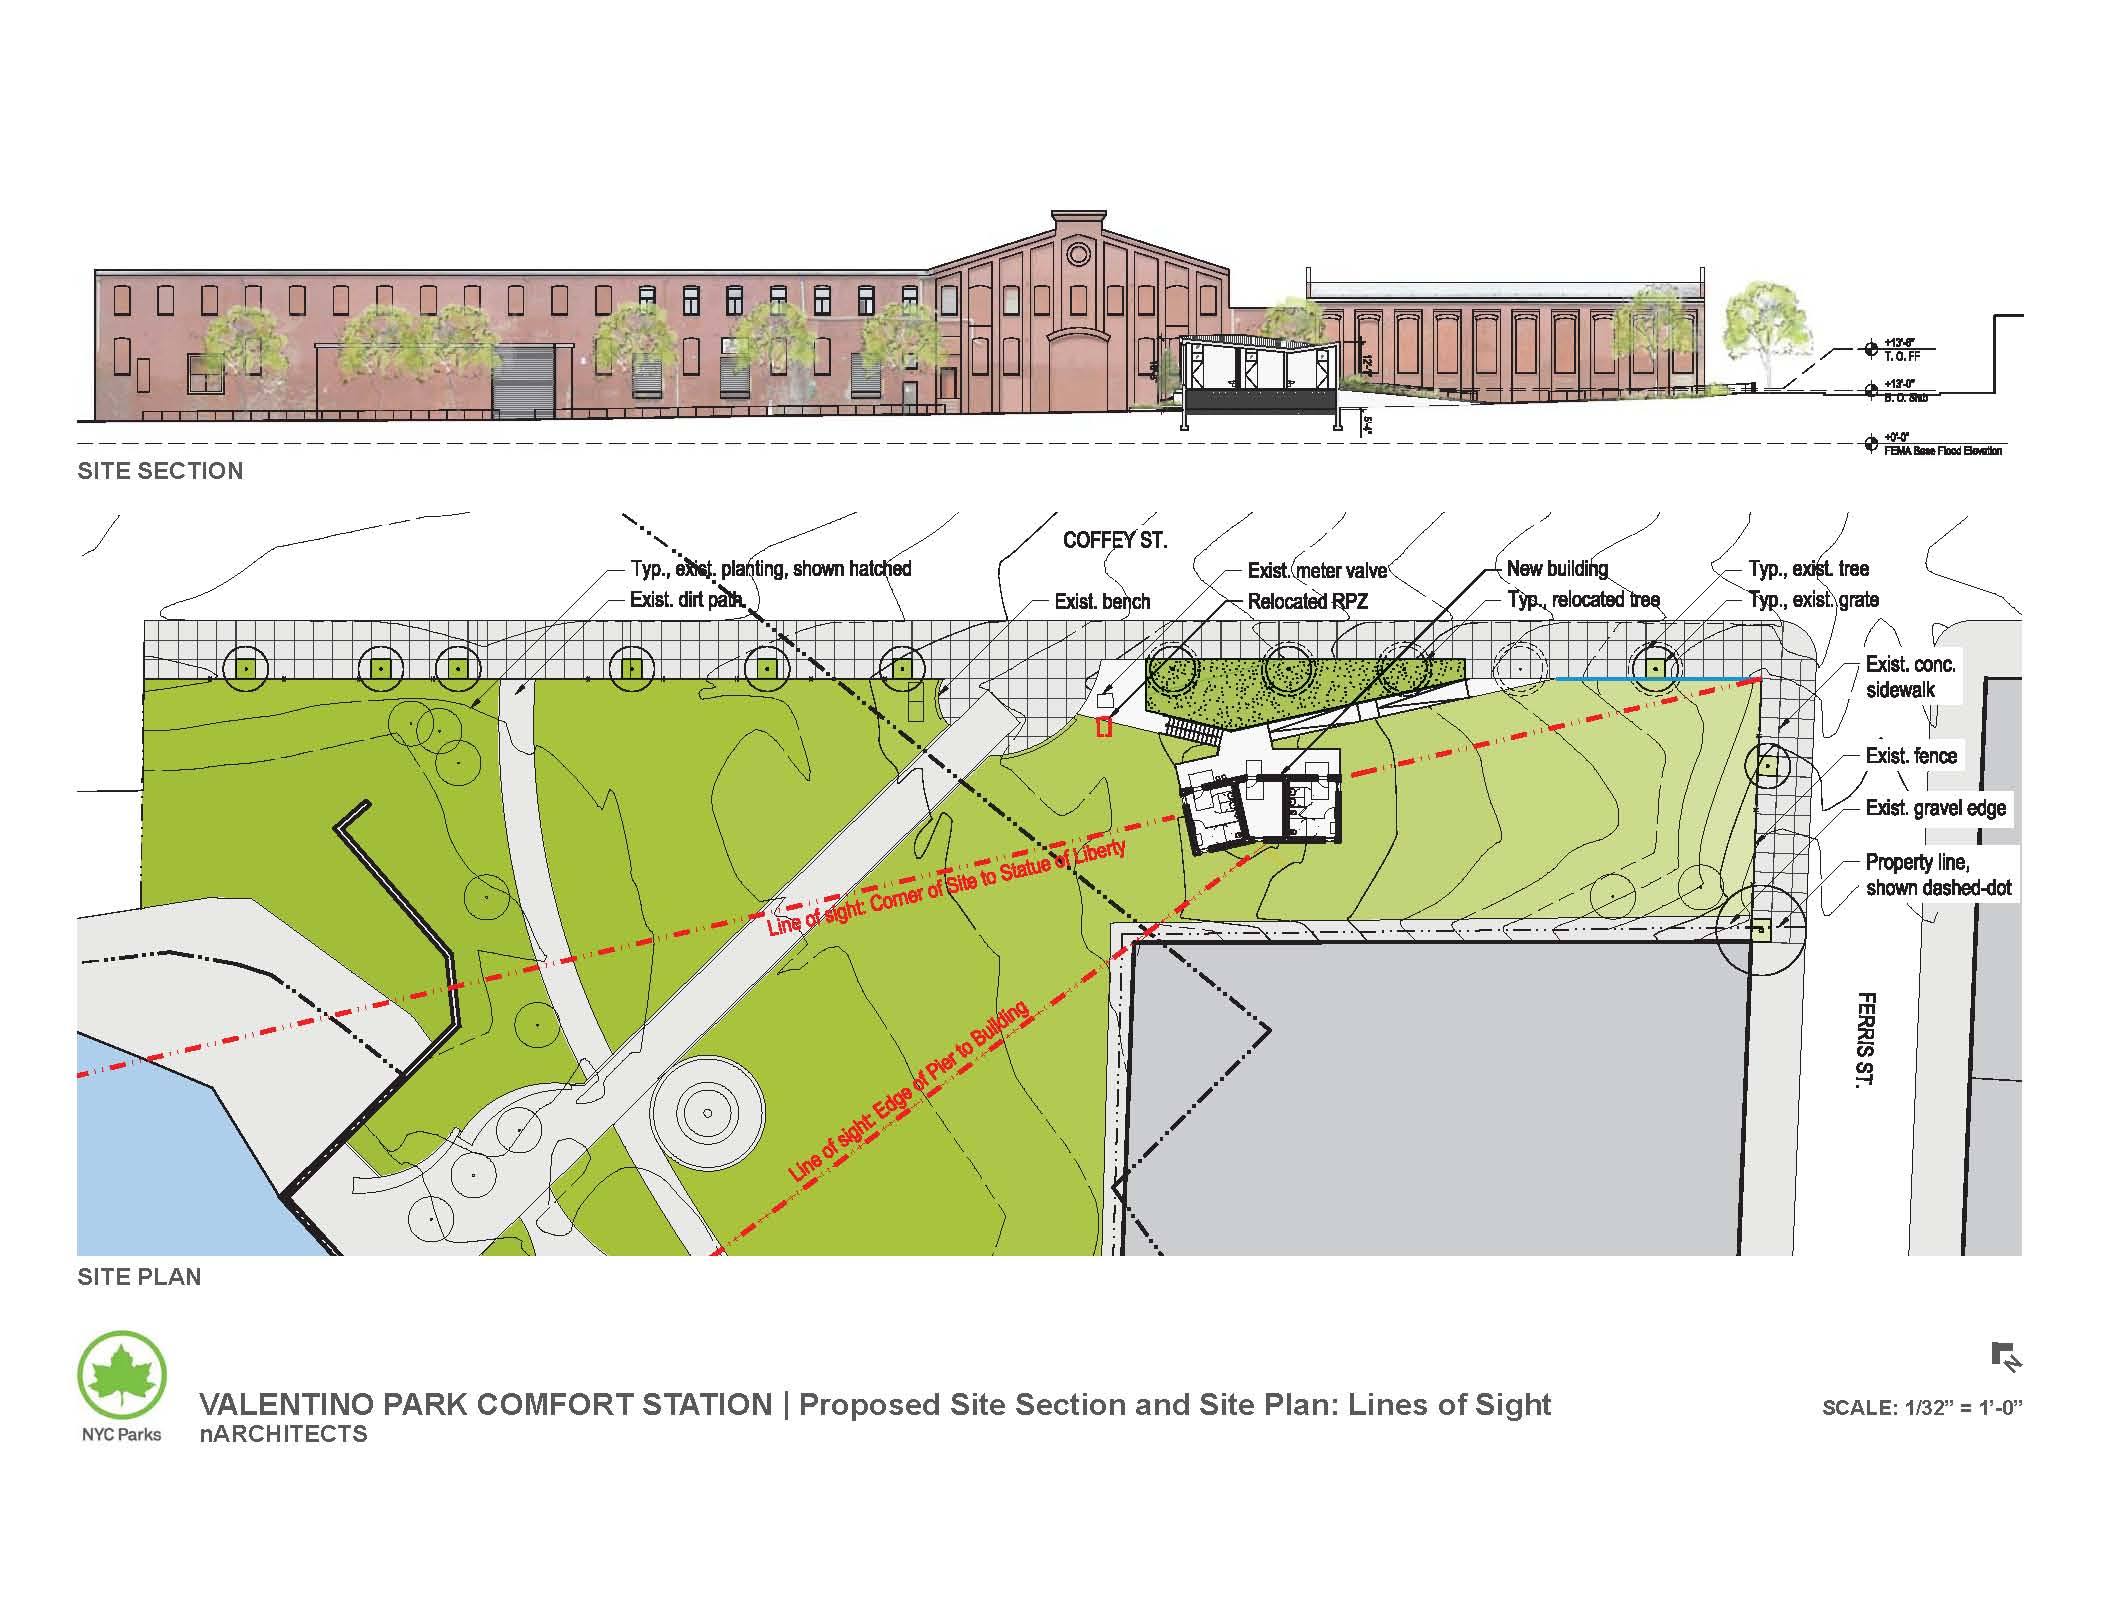 From Parks Department PDF. See link at left for full PDF.